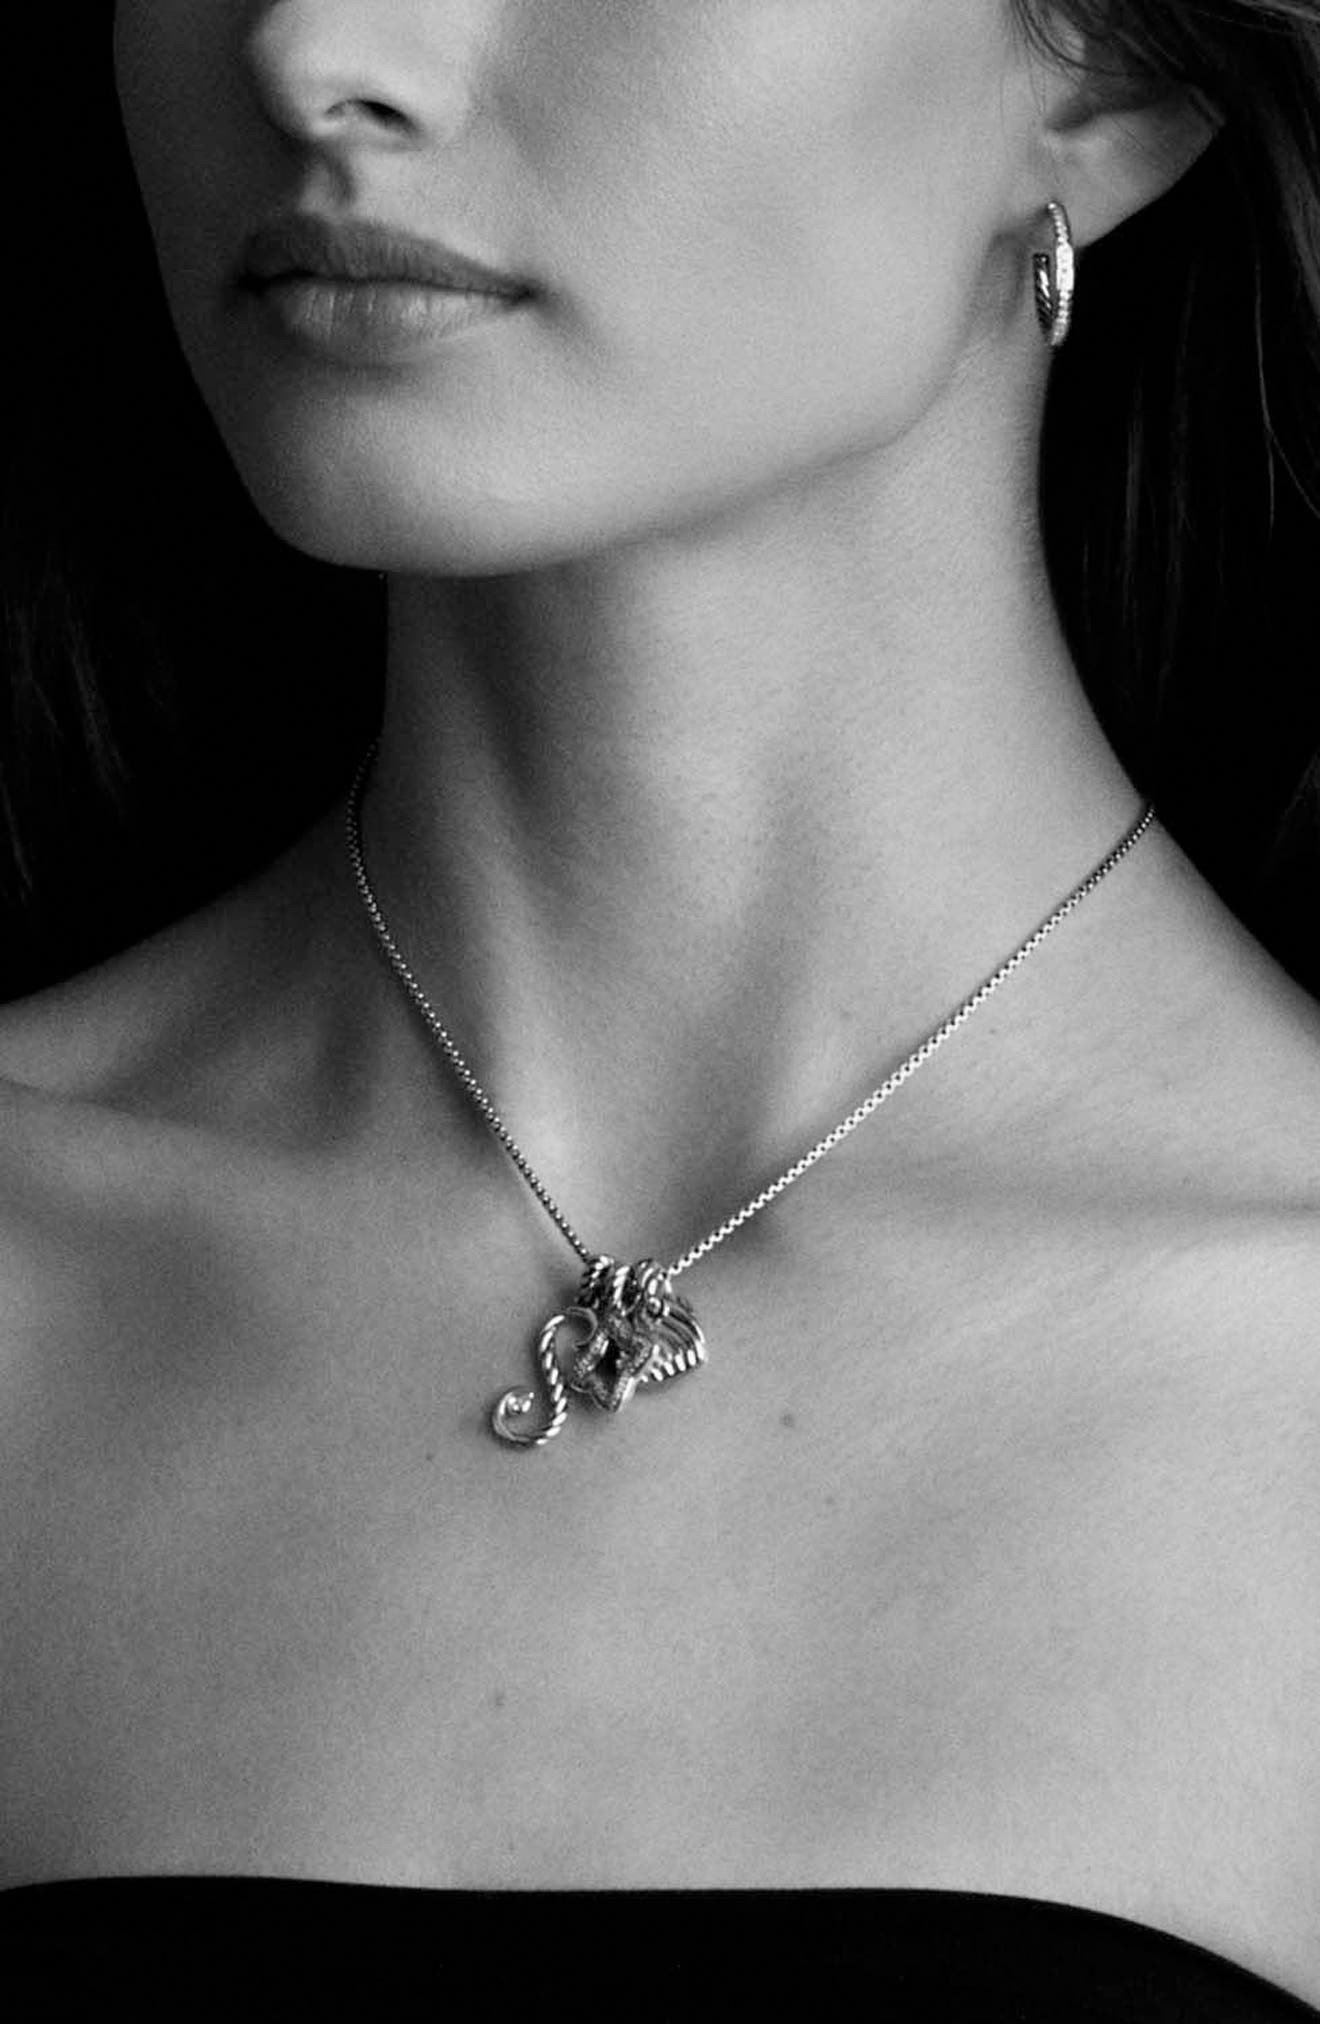 'Chain' Baby Box Chain Necklace,                             Alternate thumbnail 4, color,                             TWO TONE